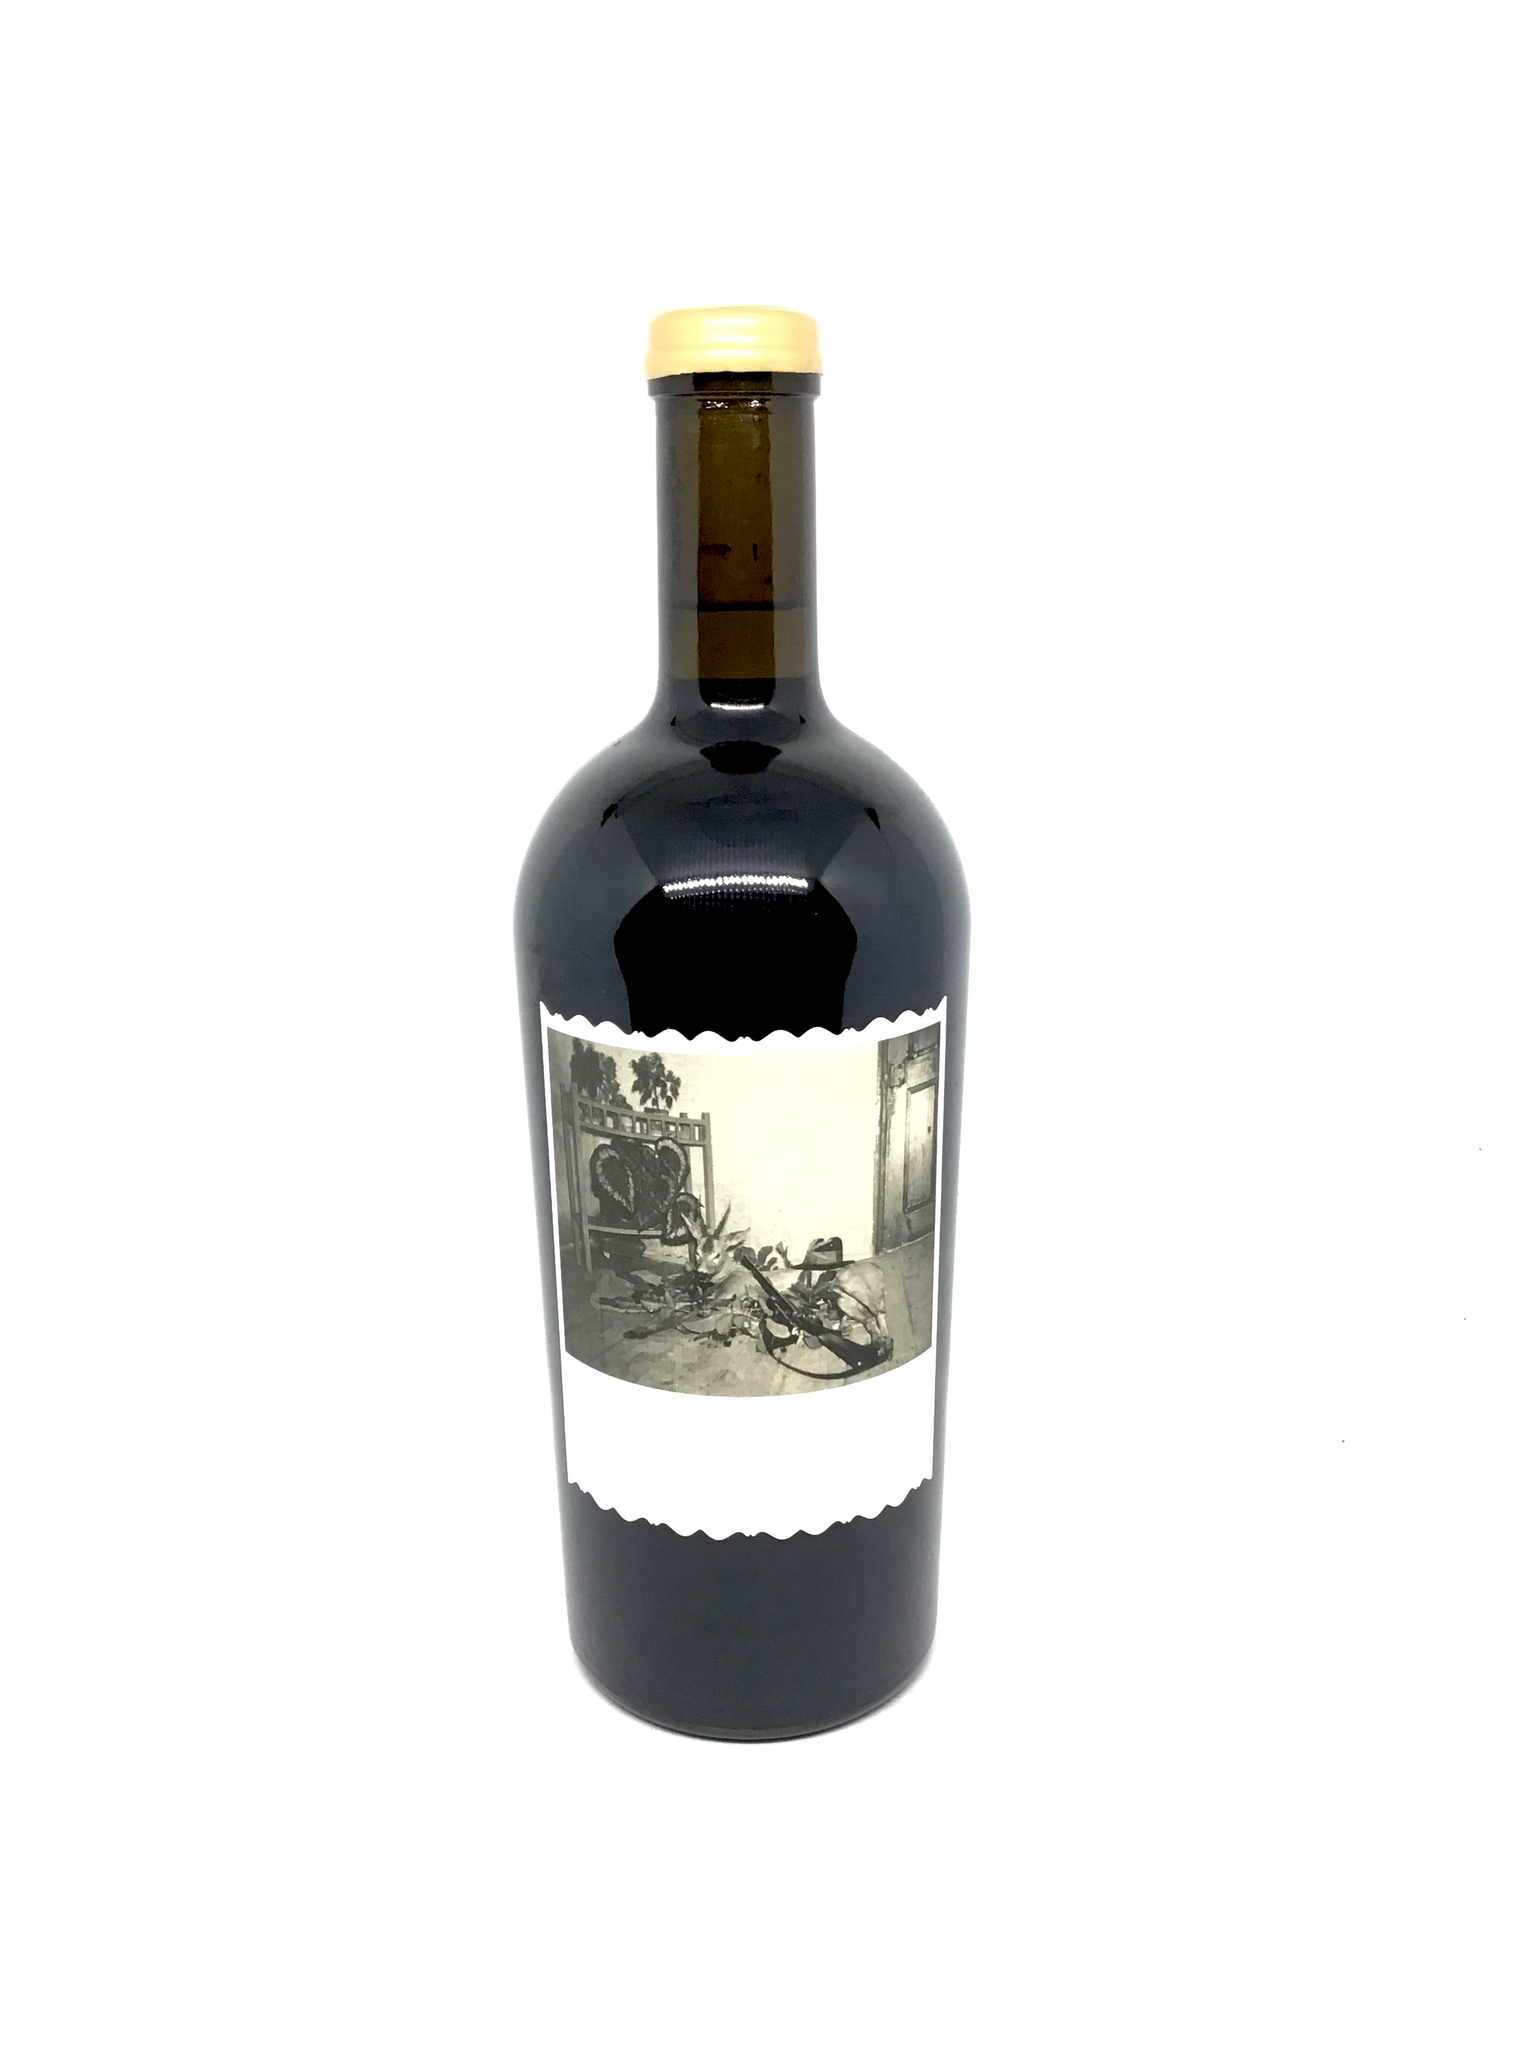 Sine Qua Non, 'The Gorgeous Victim', Grenache, California, 2017